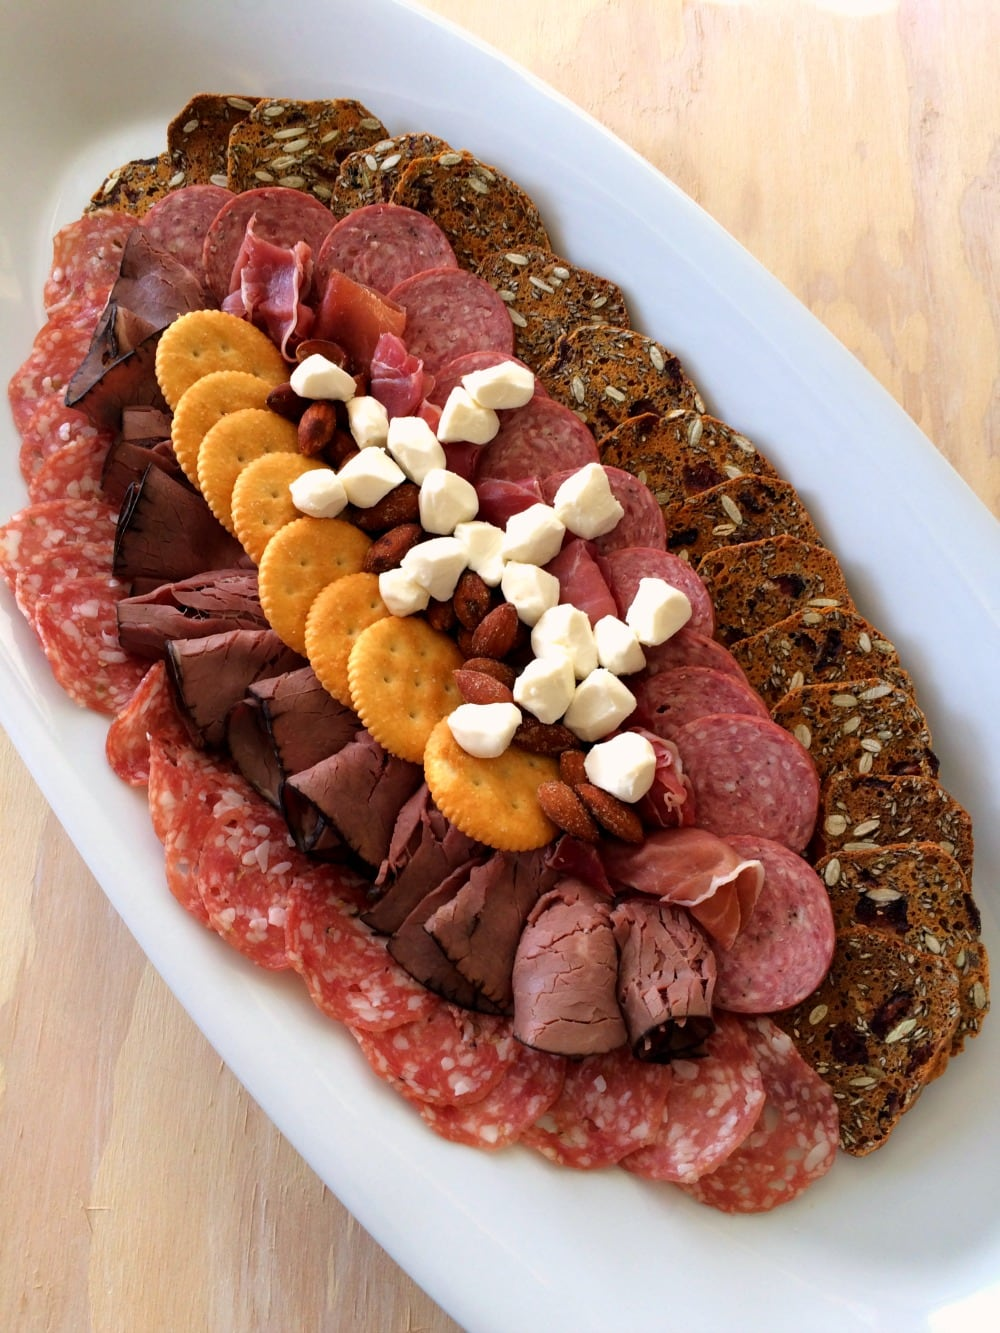 Meat and cheese arranged in the shape of a football on a white oval platter